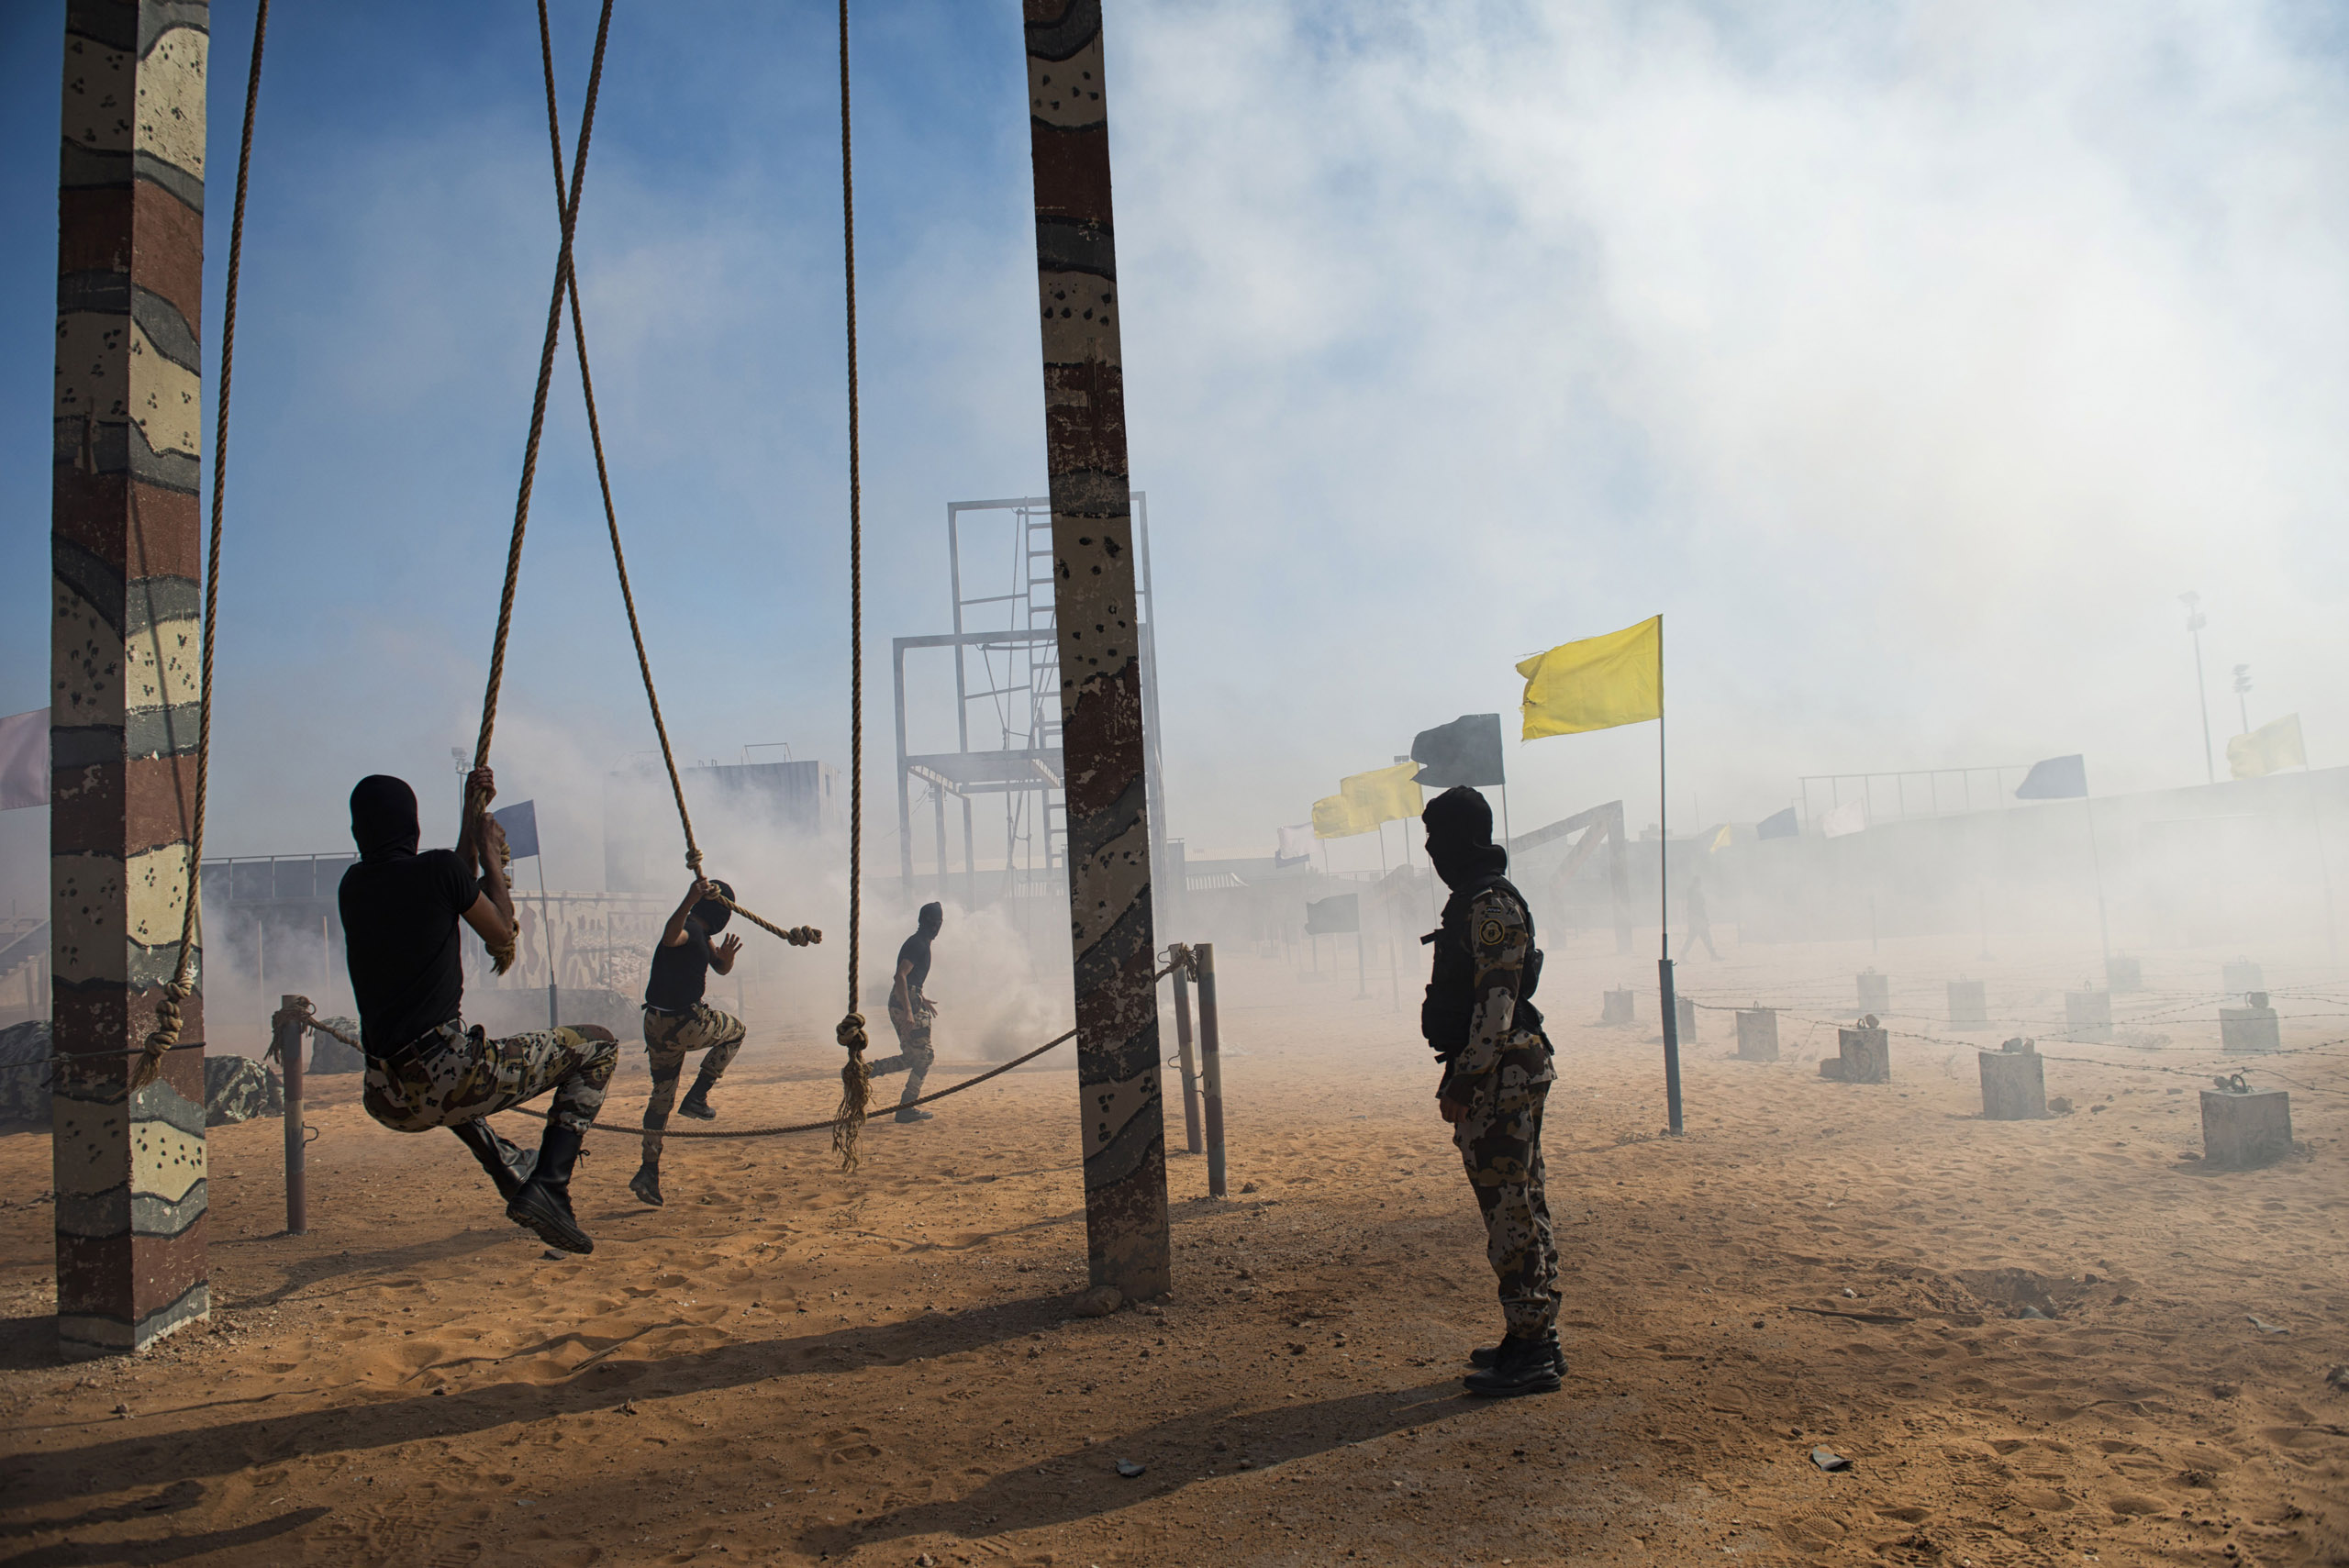 Troops with the Saudi Special Security Forces repel into a recreated scene of an explosion and ongoing attack, March 5, 2013.